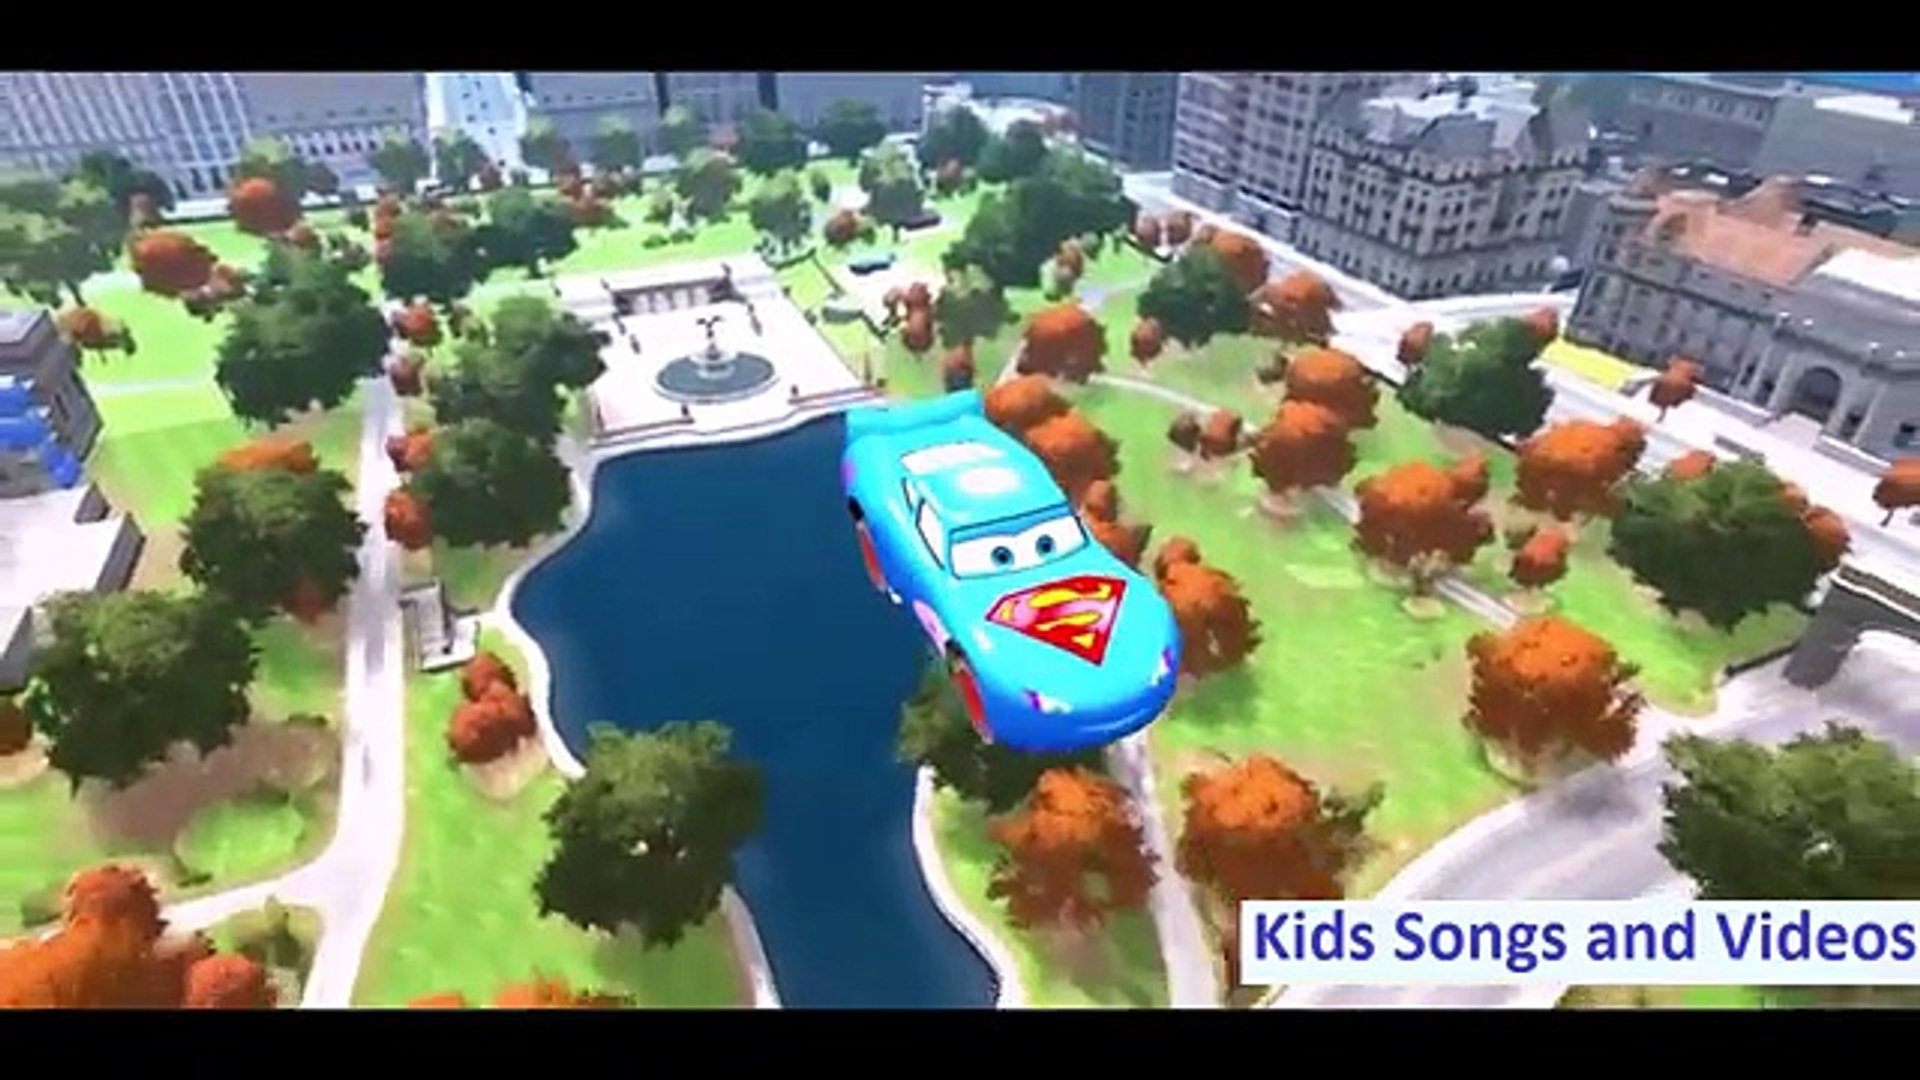 Thor with SpiderMan Dancing and Traveling on the Car - Cowboy Travel on the Highway - Kids Animation